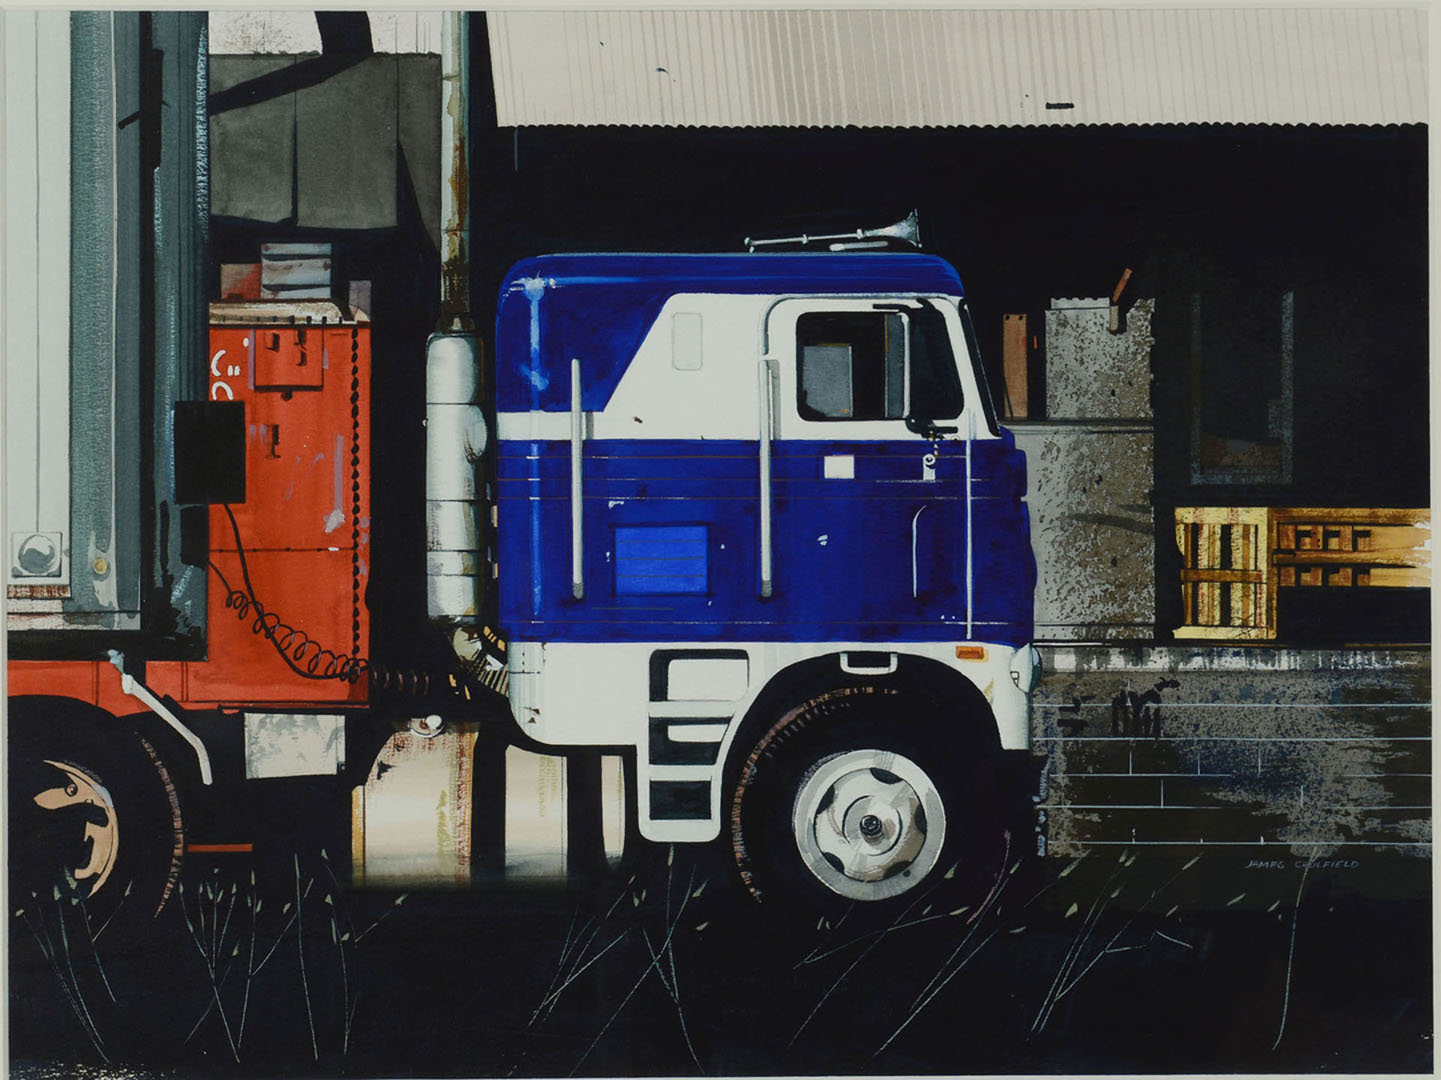 Lot 2872259: 1 James Caulfield watercolor painting – semi truck